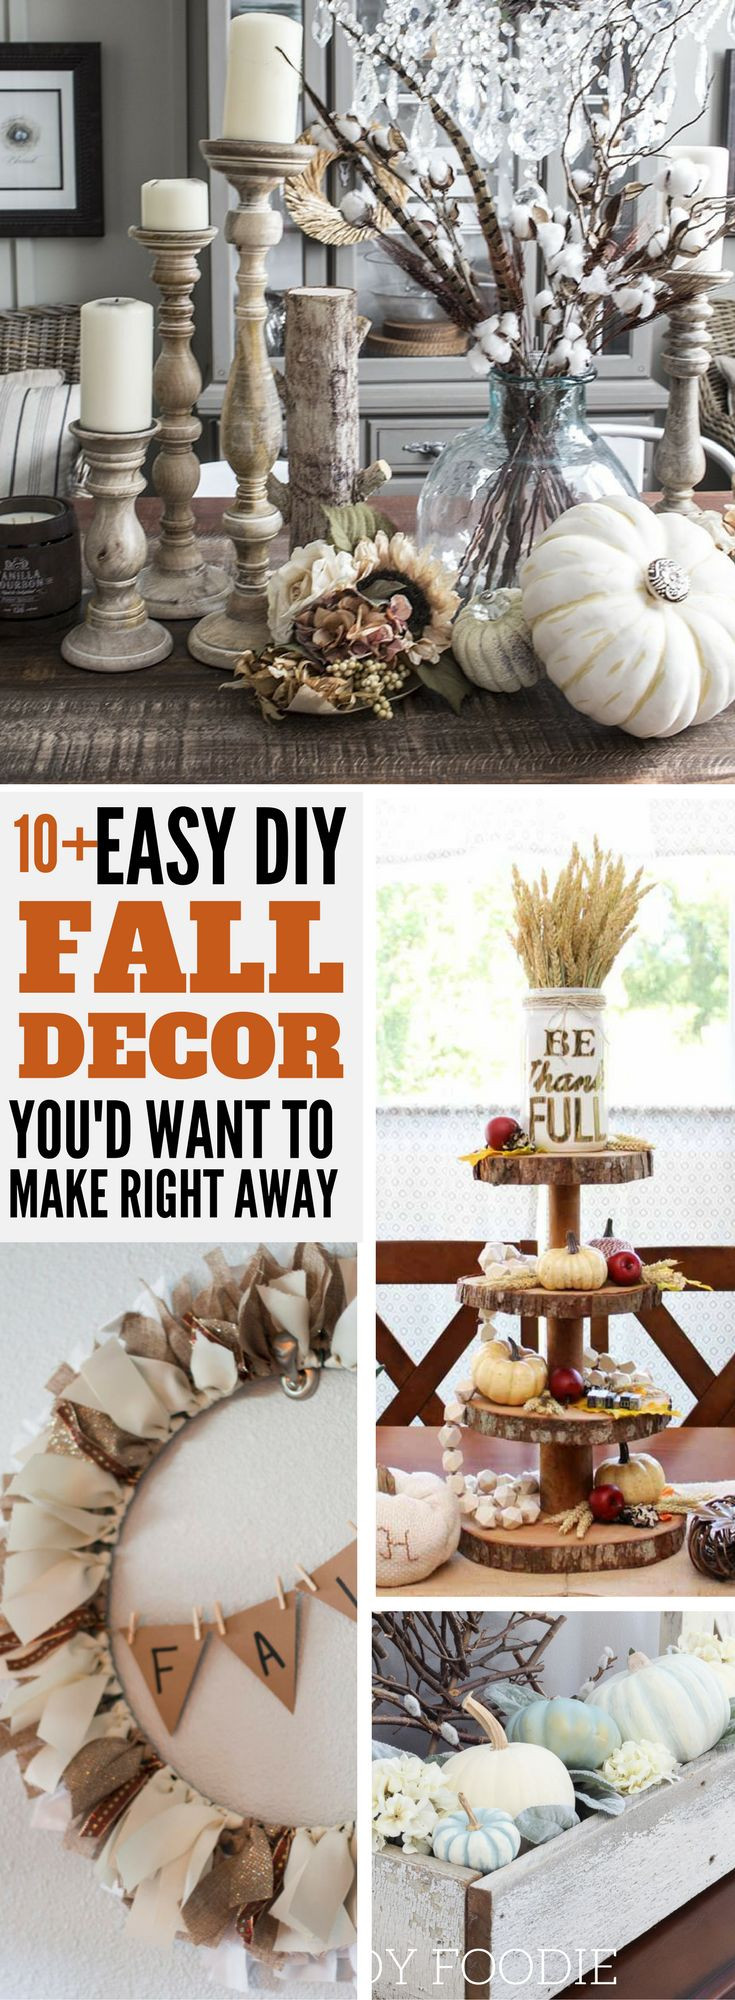 Best ideas about Dollar Tree DIY Decor . Save or Pin Best 25 Dollar tree fall decor autumn ideas on Pinterest Now.